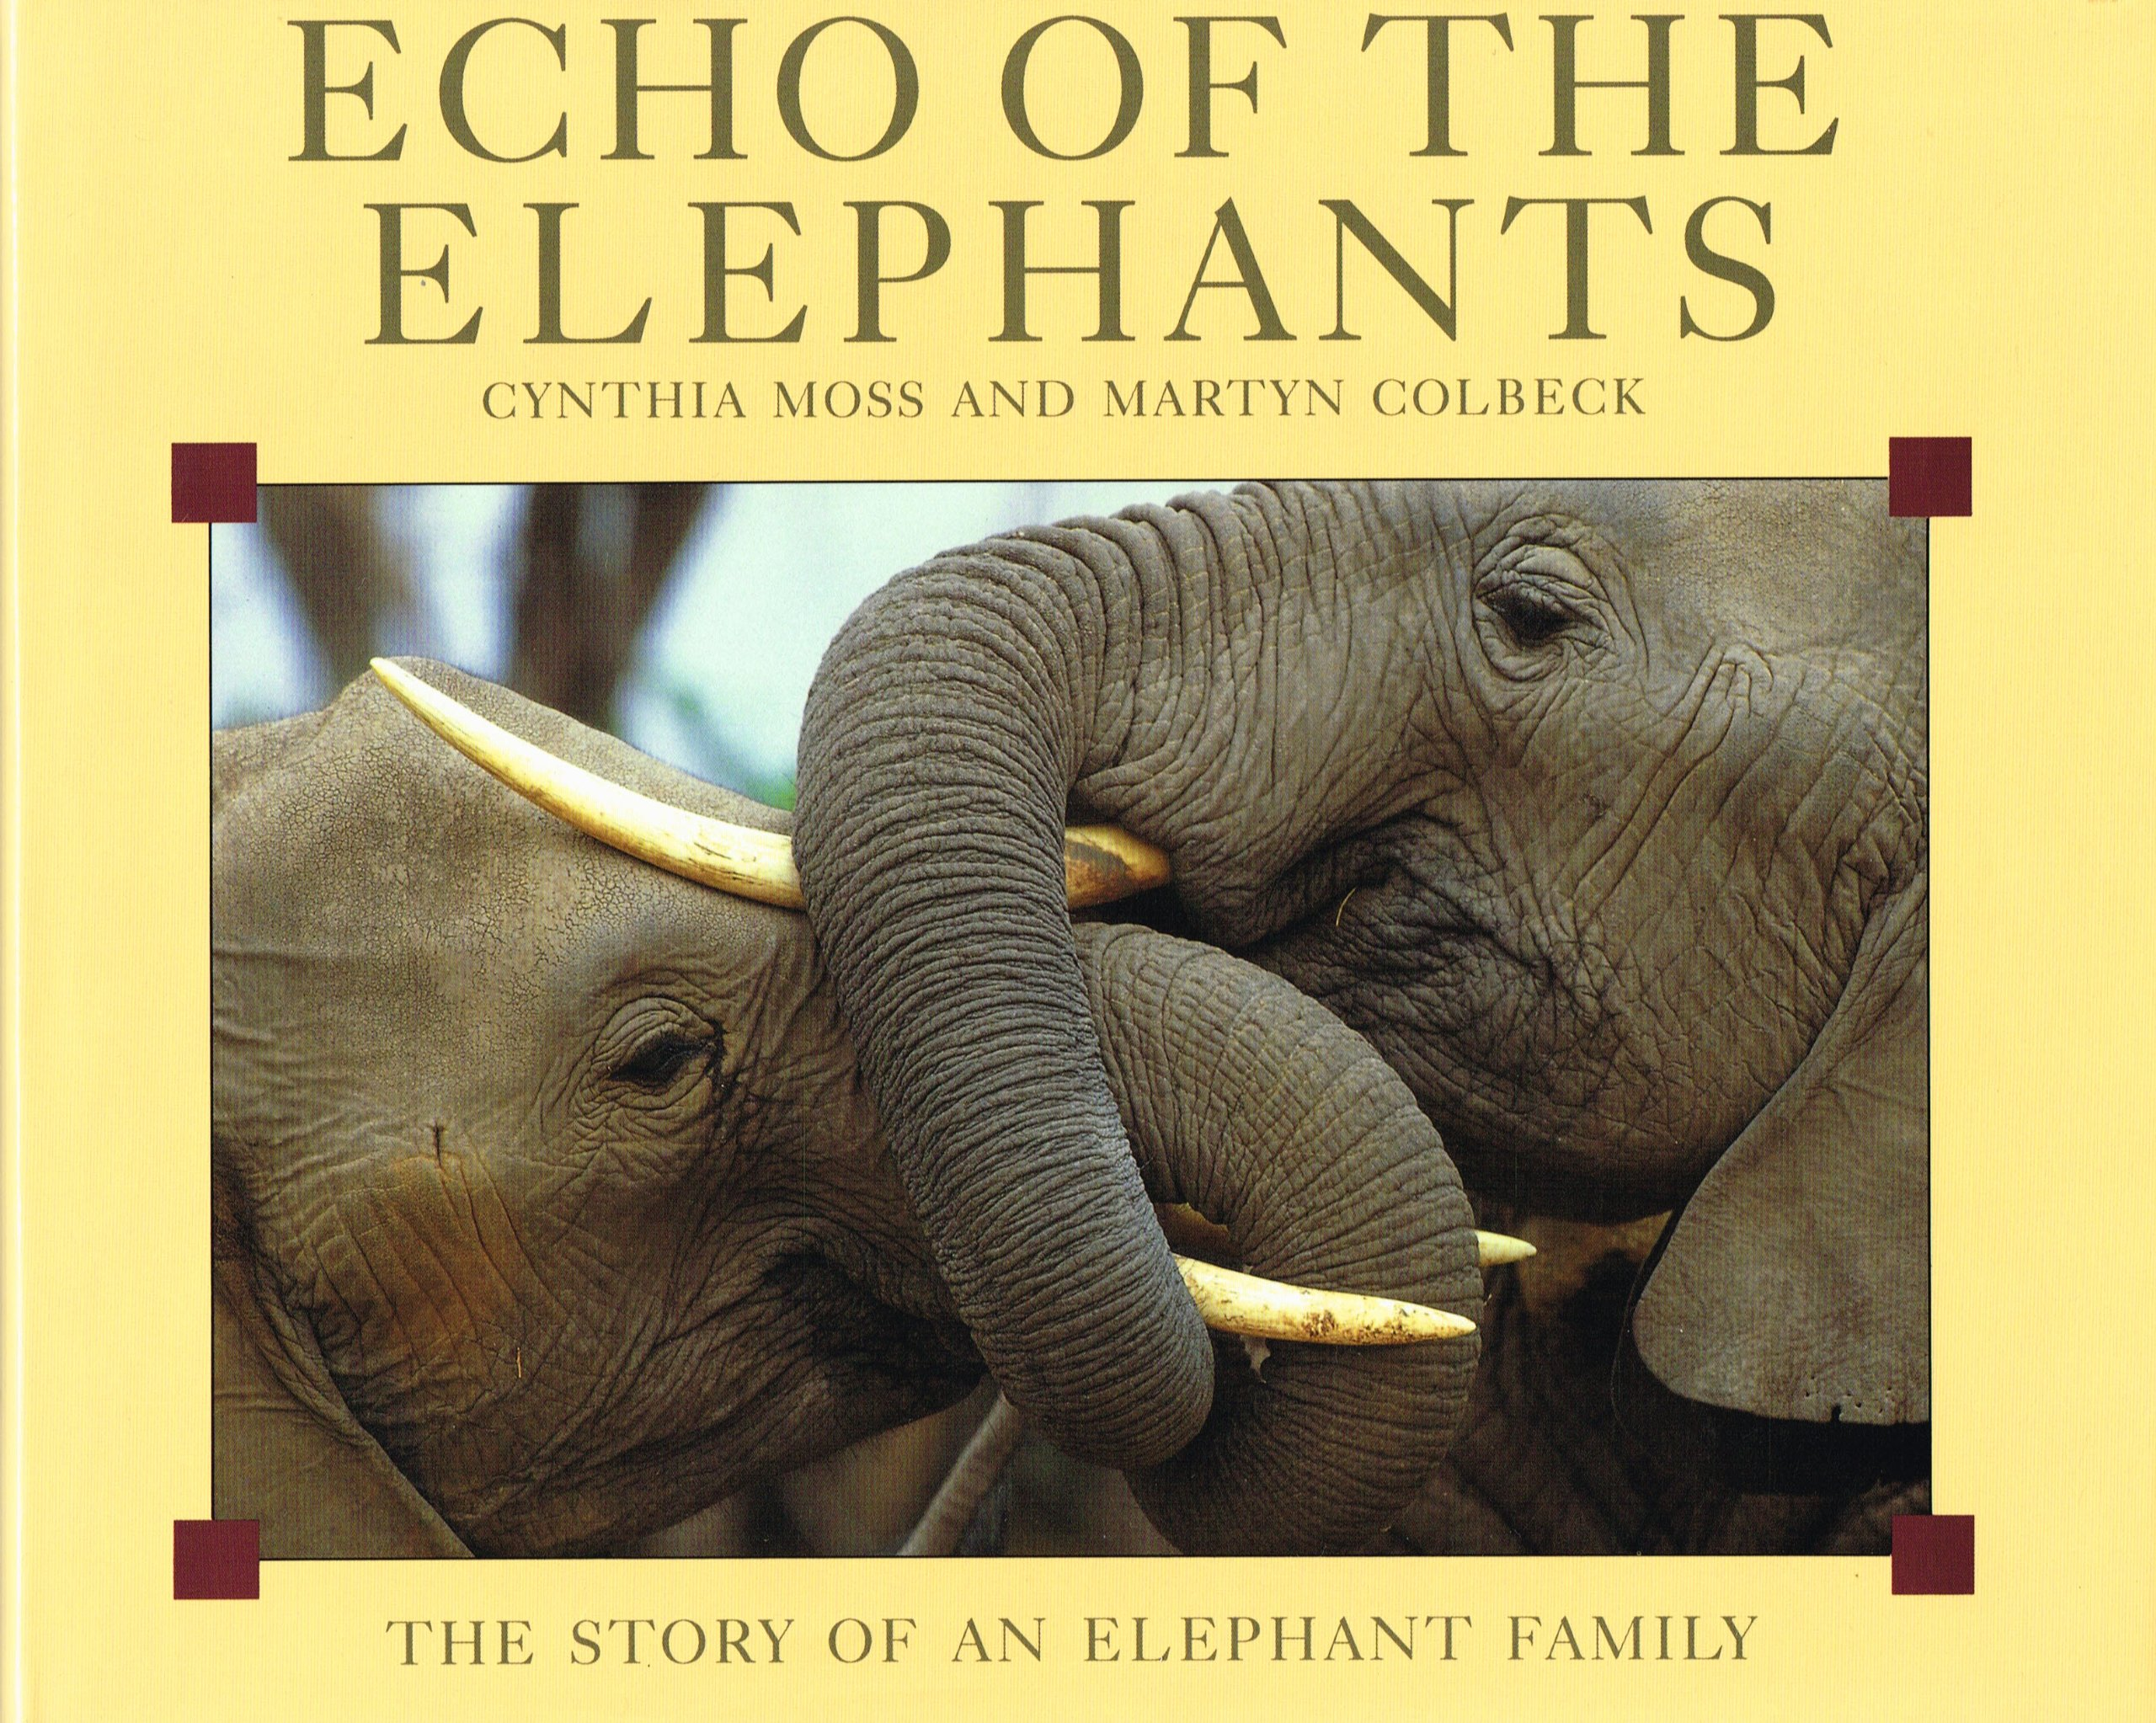 Echo of the Elephants: Story of an Elephant Family: Amazon.co.uk ...